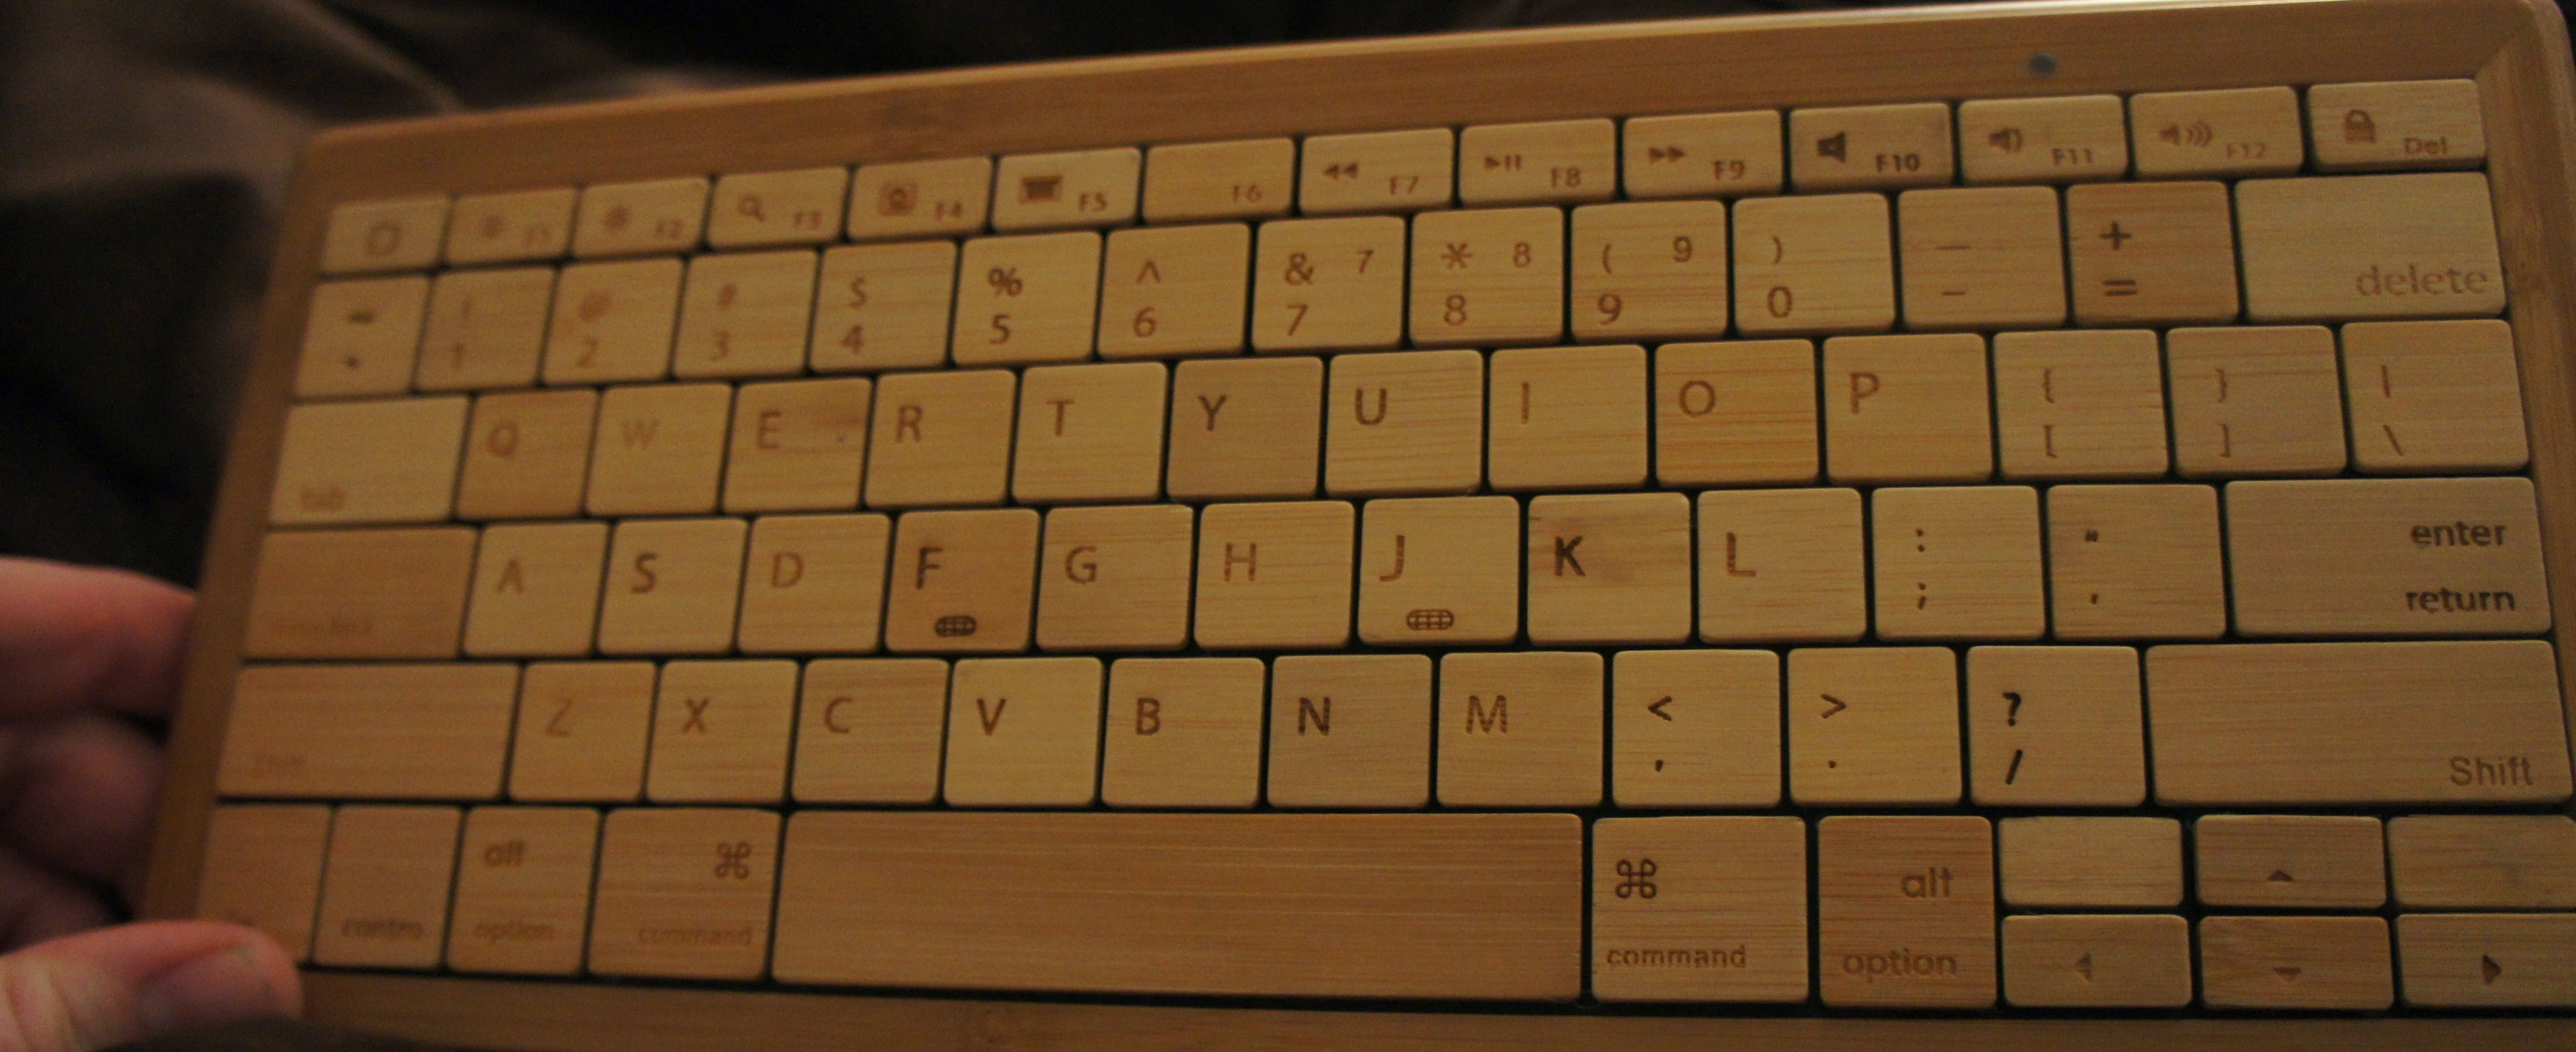 20130302172957-keyboard-1